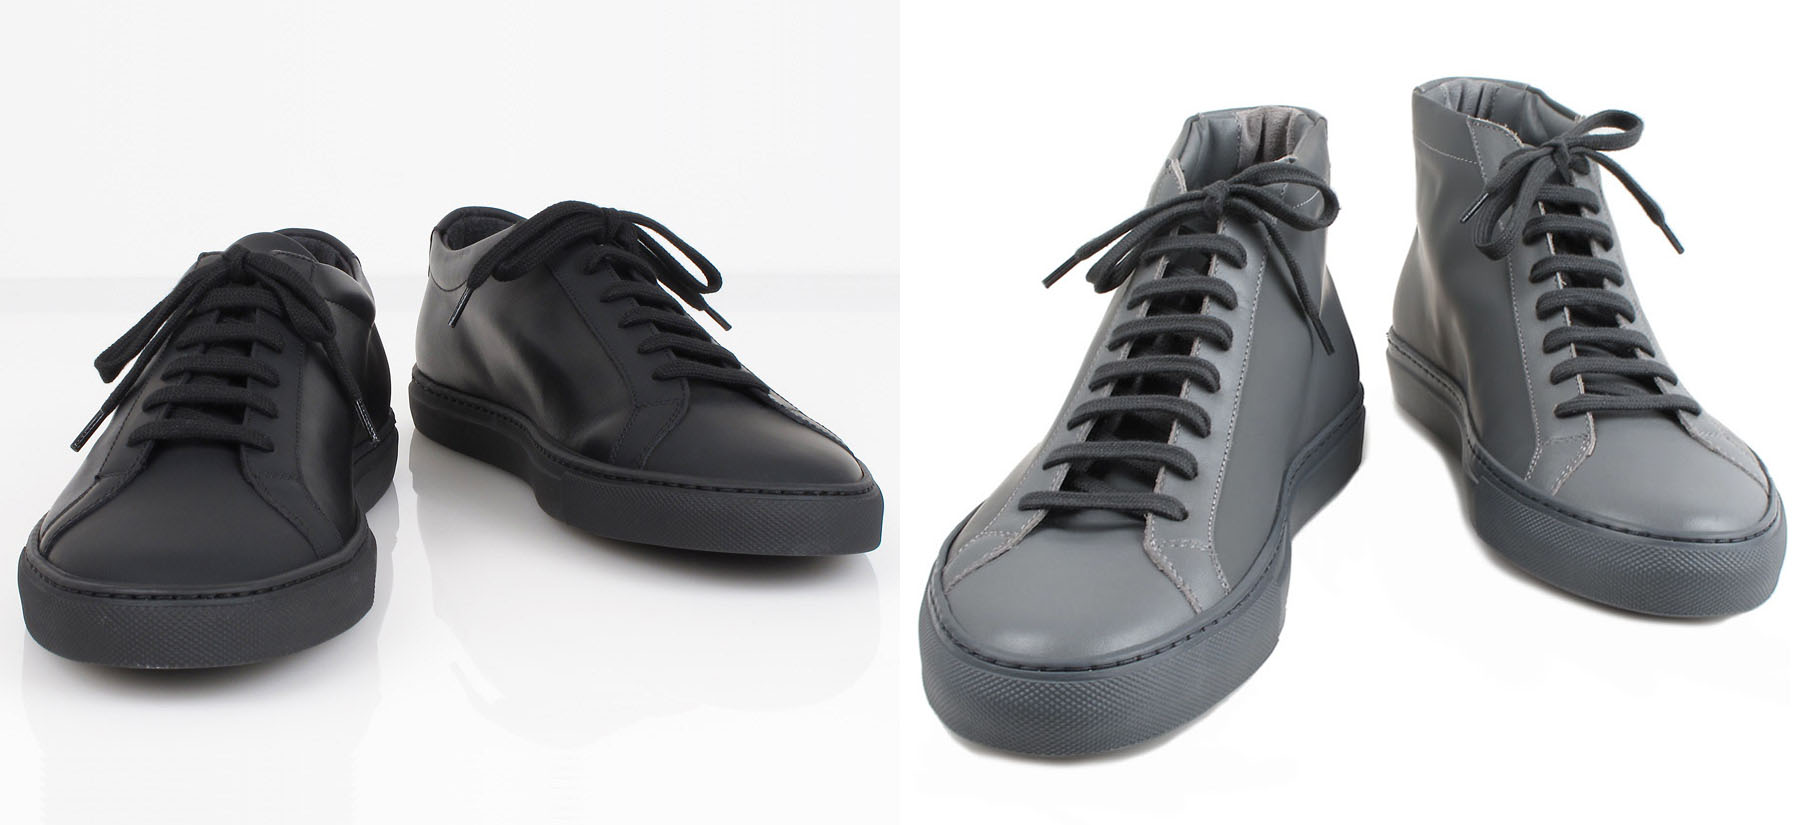 Odin_Common_Projects_Capsule_01_